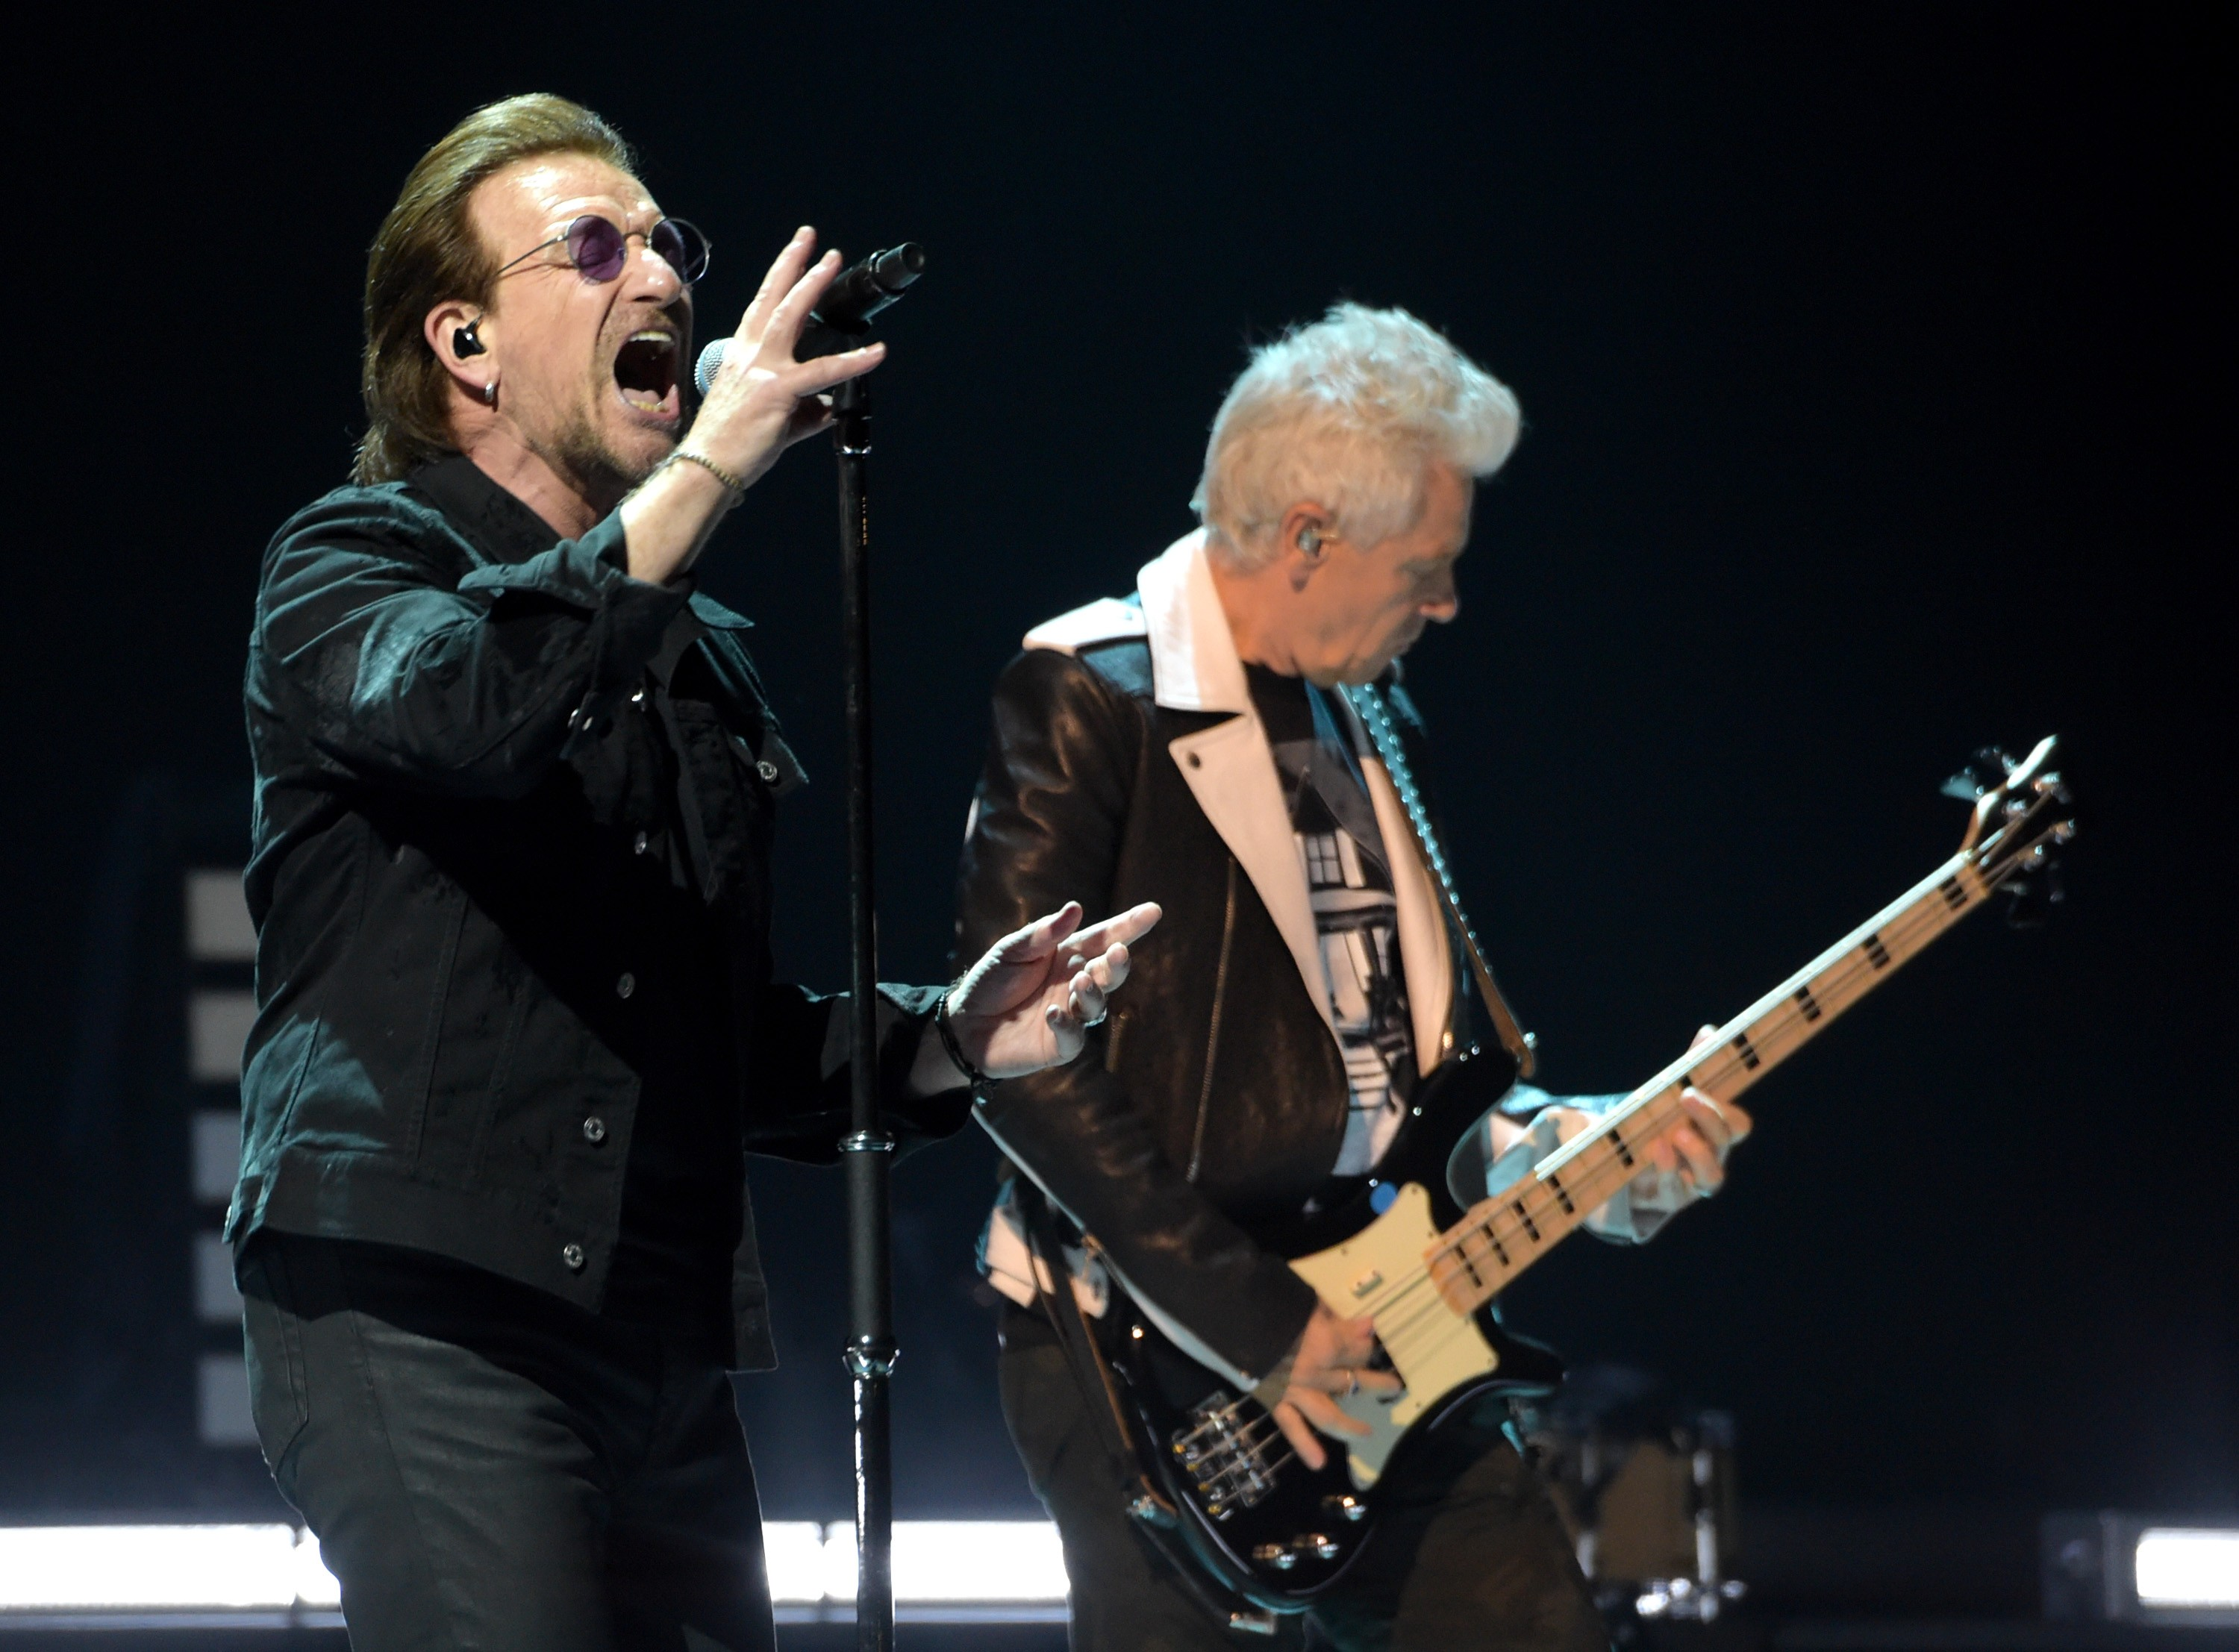 Bno Vox e Adam Clayton durante show do U2 (Foto: Getty Images)